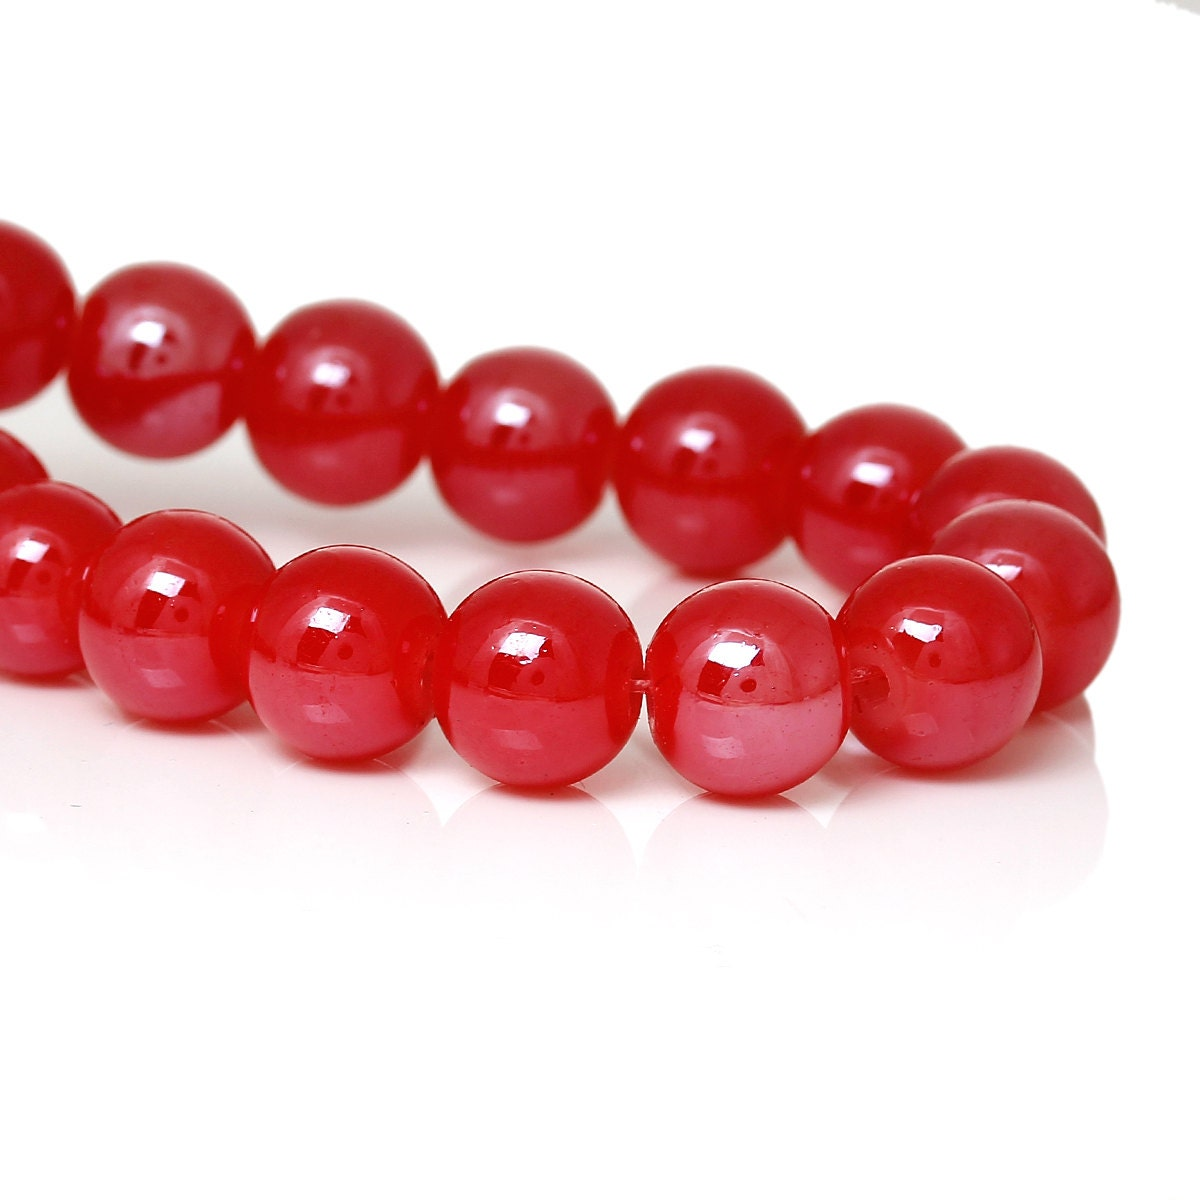 Red Ruby Beads: 50 Glass Beads 8mm Ruby Red BD760